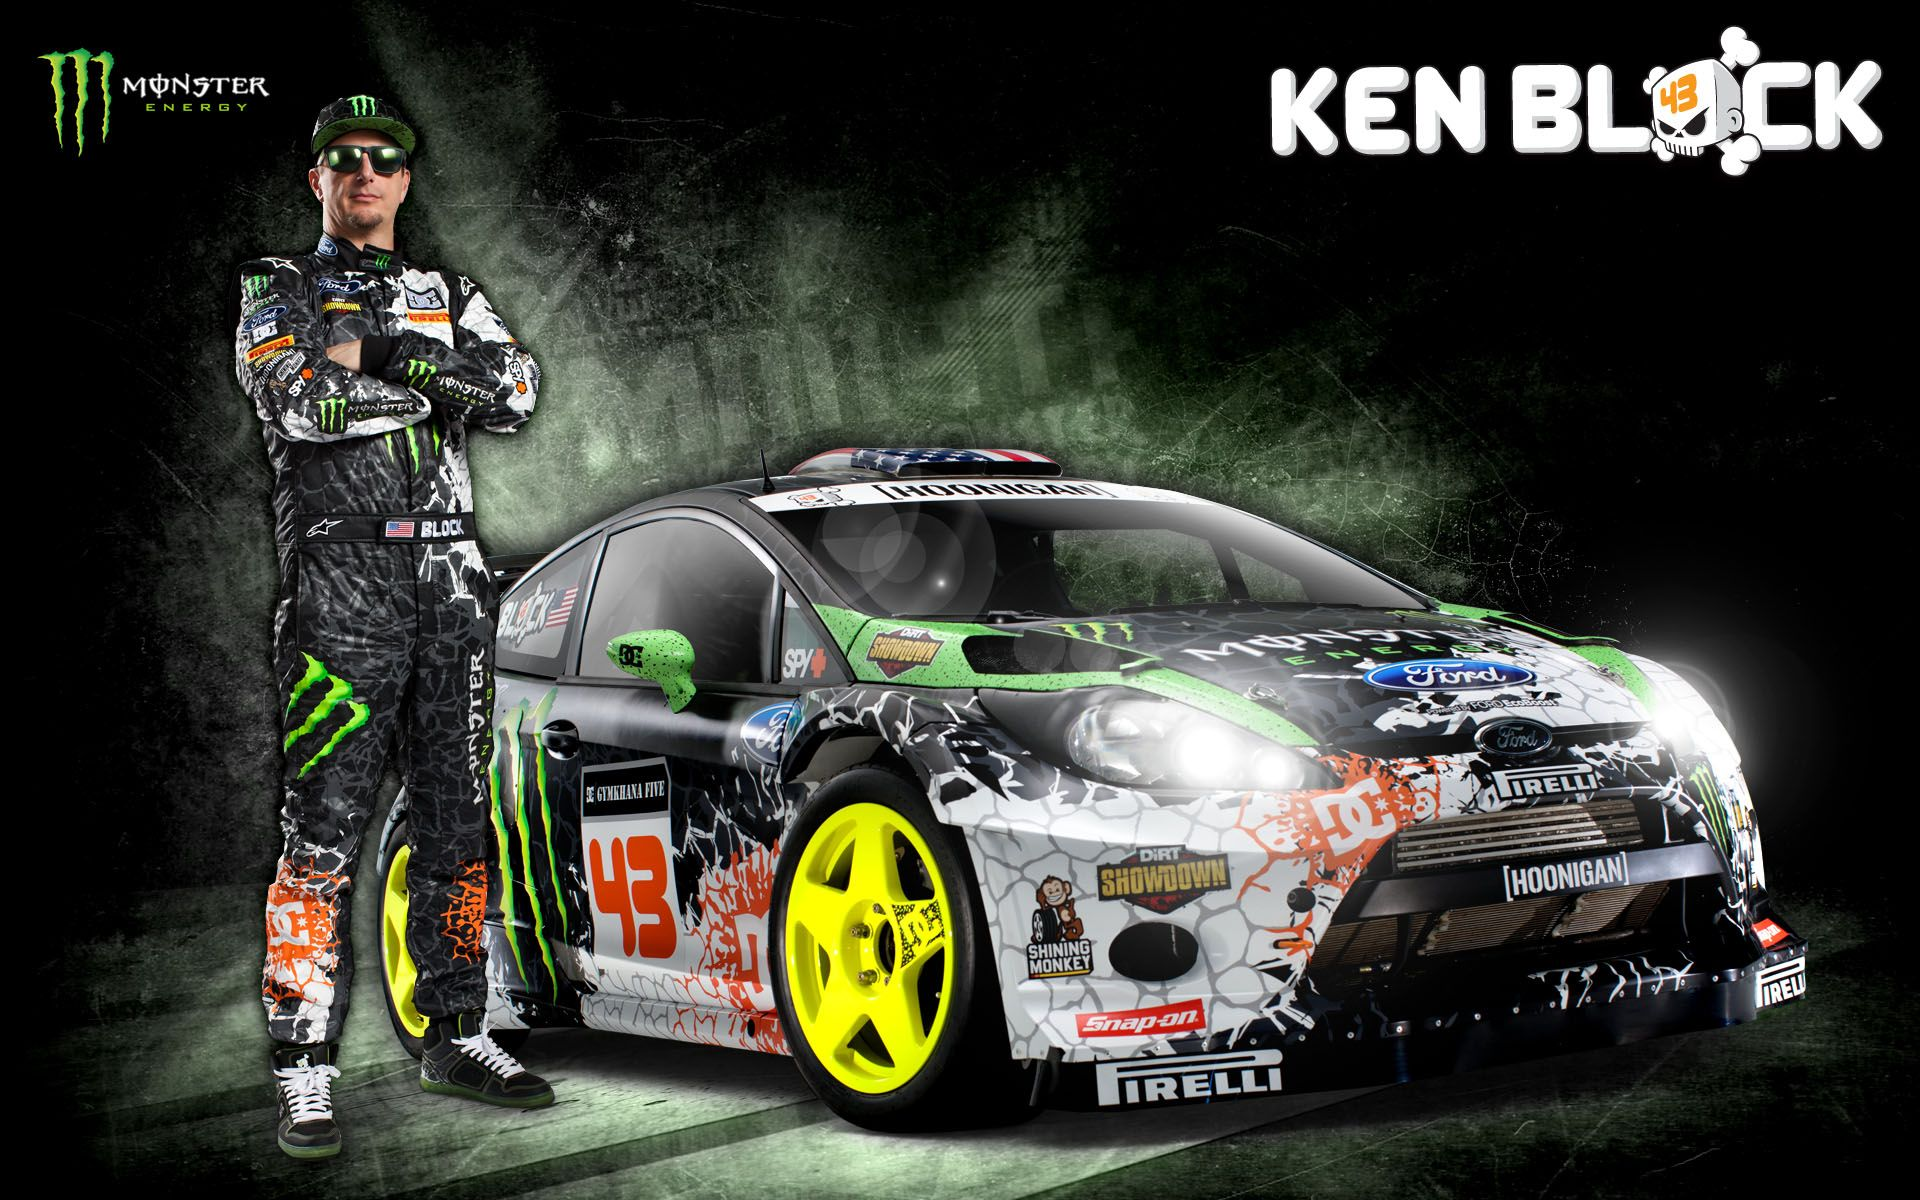 ken block - Google Search | kblock43 | Pinterest | Rally drivers ...